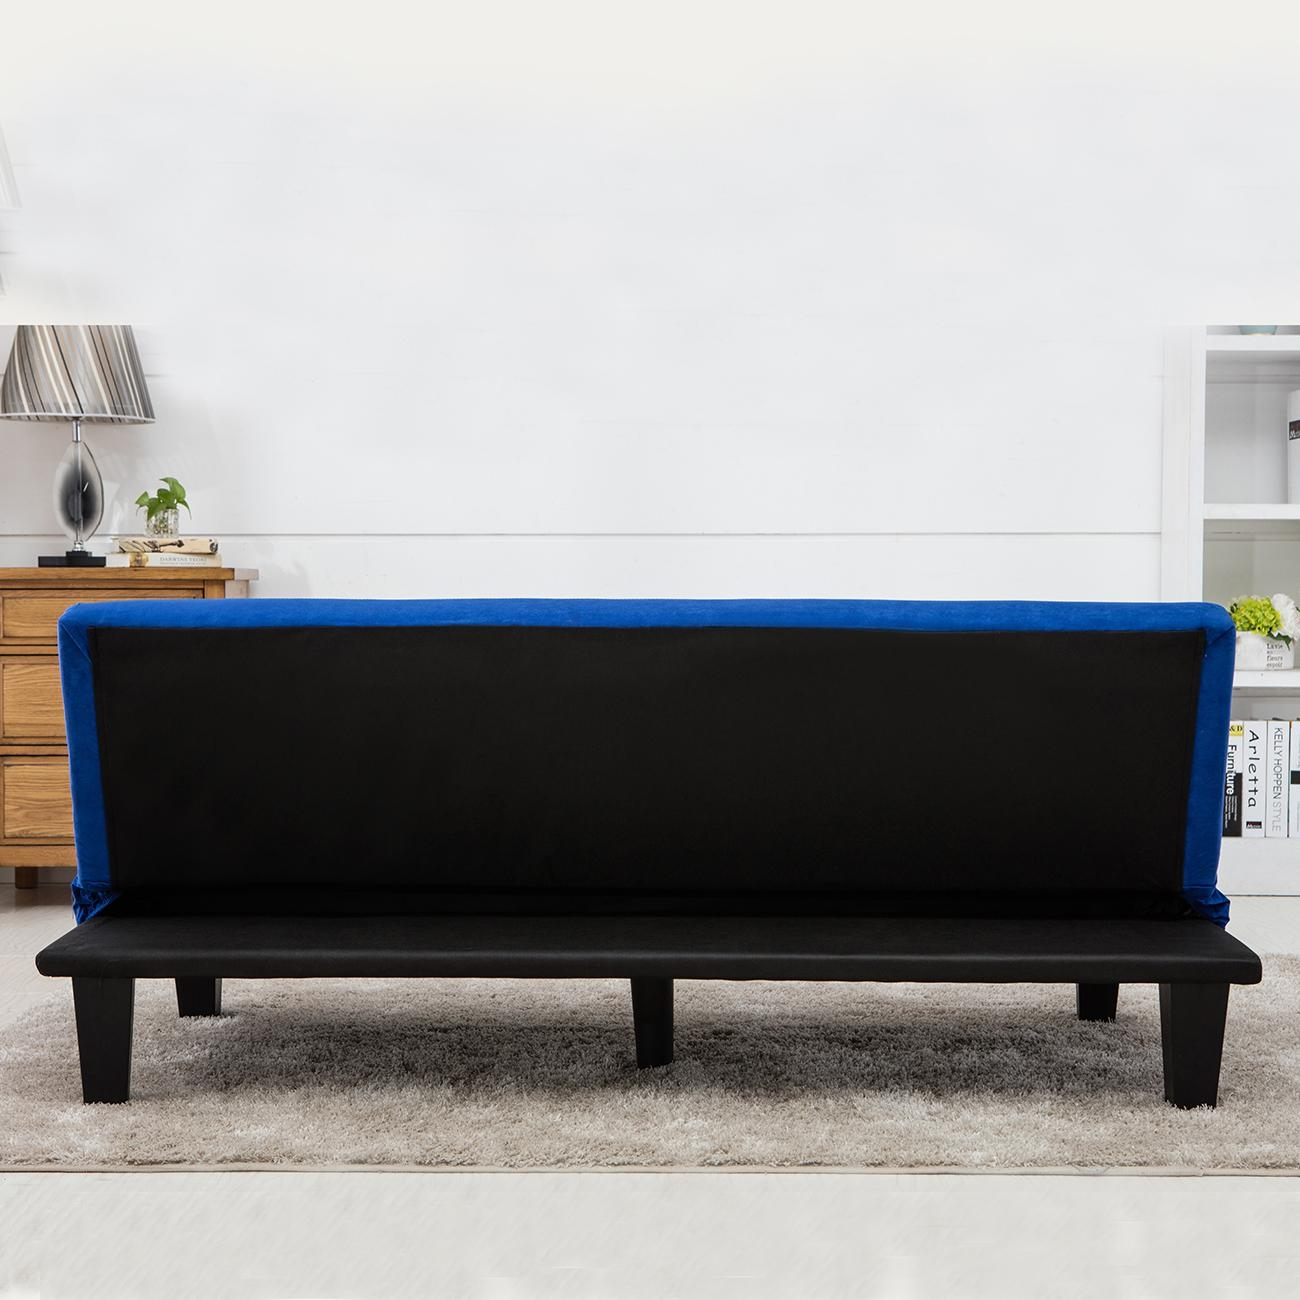 Modern Style Sofa Bed Futon Couch Sleeper Lounge Sleep Dorm Office For Futon Couch Beds (View 3 of 20)